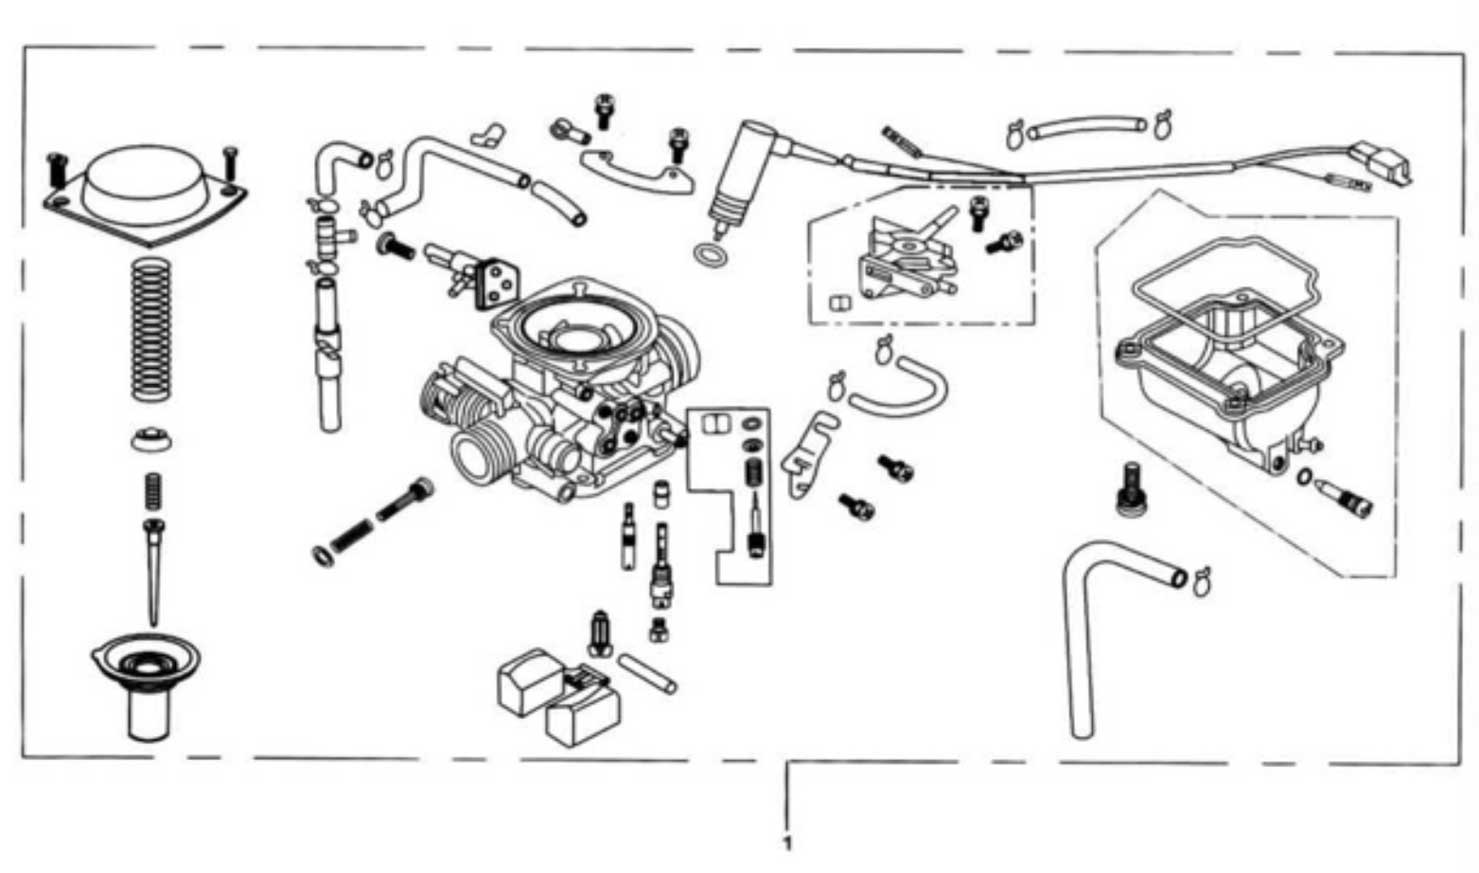 Wiring Diagram For Hammerhead 250 : 33 Wiring Diagram